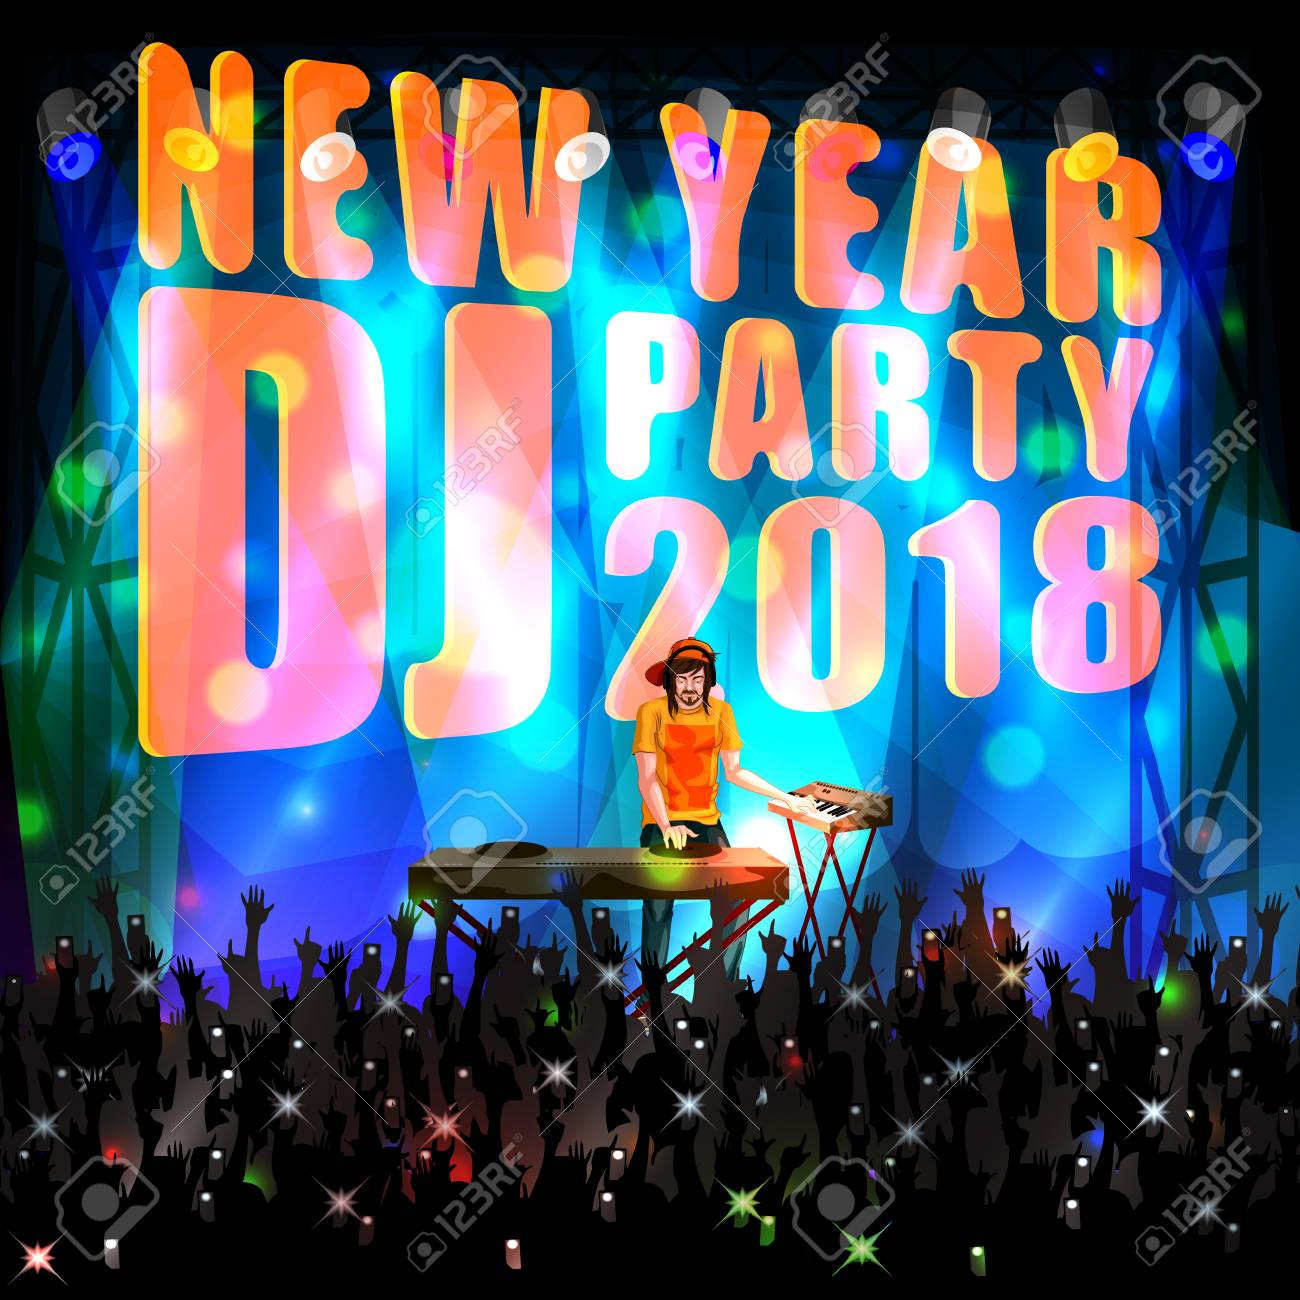 happy new year dj disco party celebration banner invitation template background stock vector 90815011